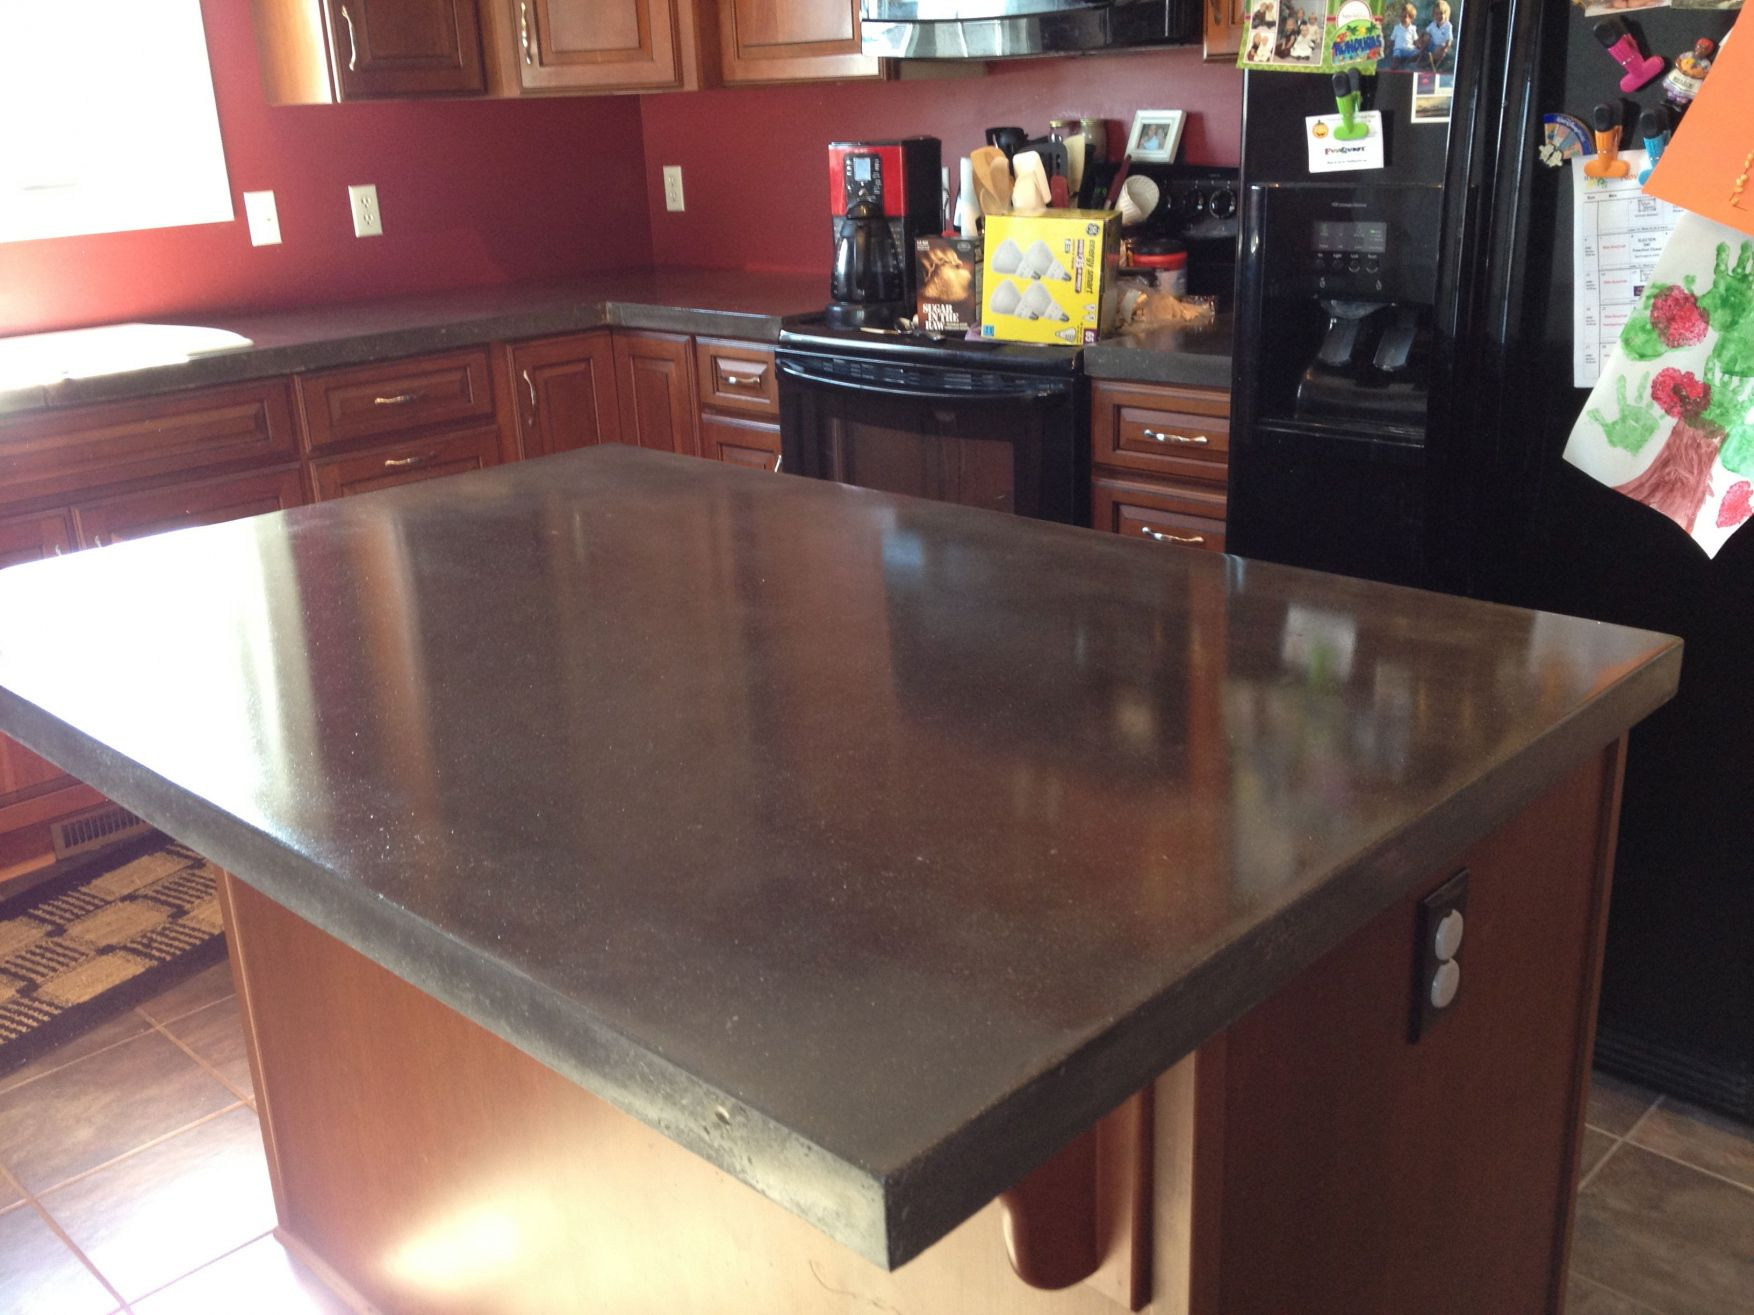 2019 Granite Countertops Norfolk Va Chalkboard Ideas For Kitchen Che Decorative Concrete